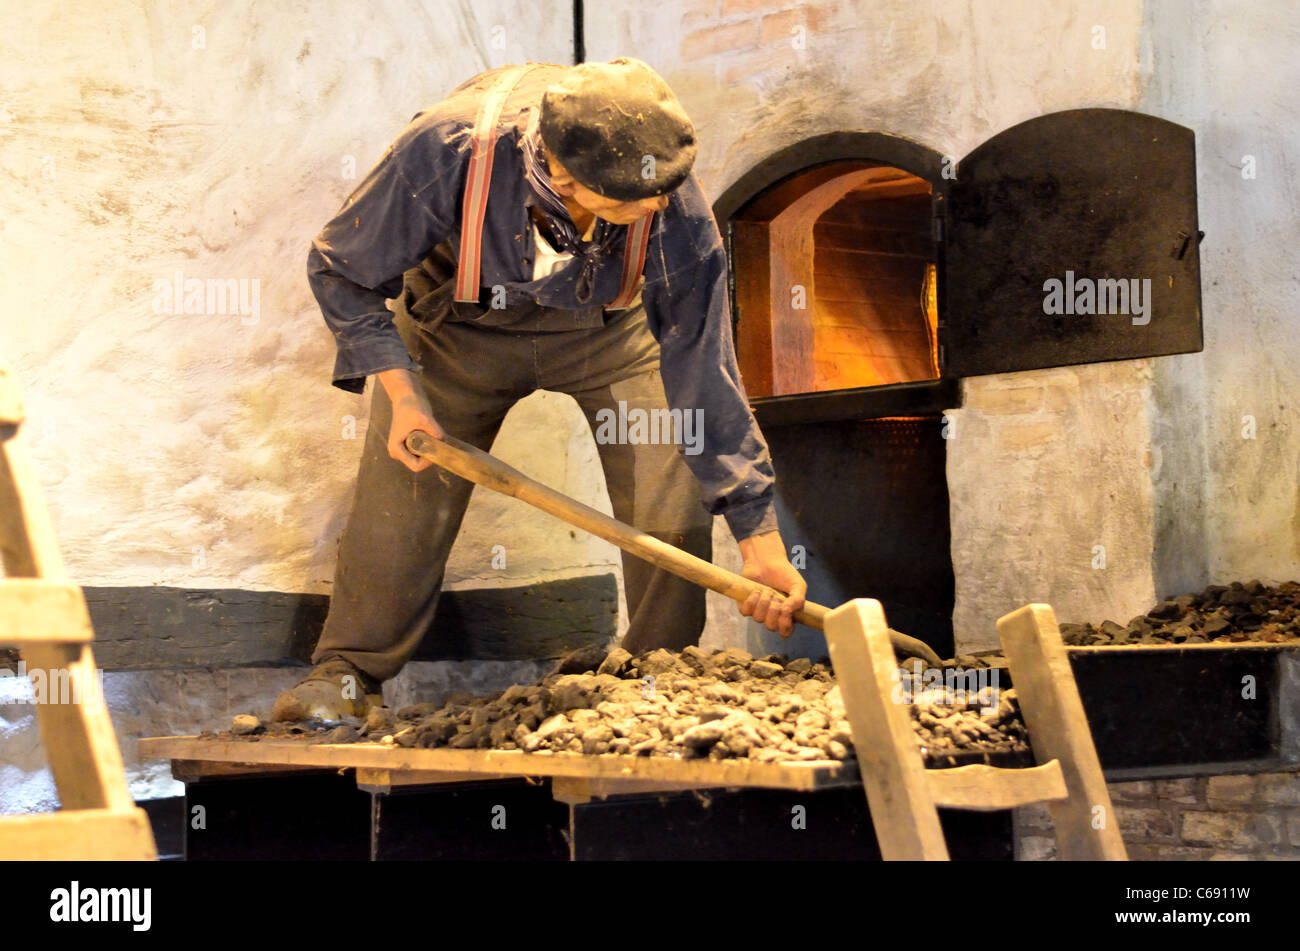 Open Air Museum, Worker - Stock Image